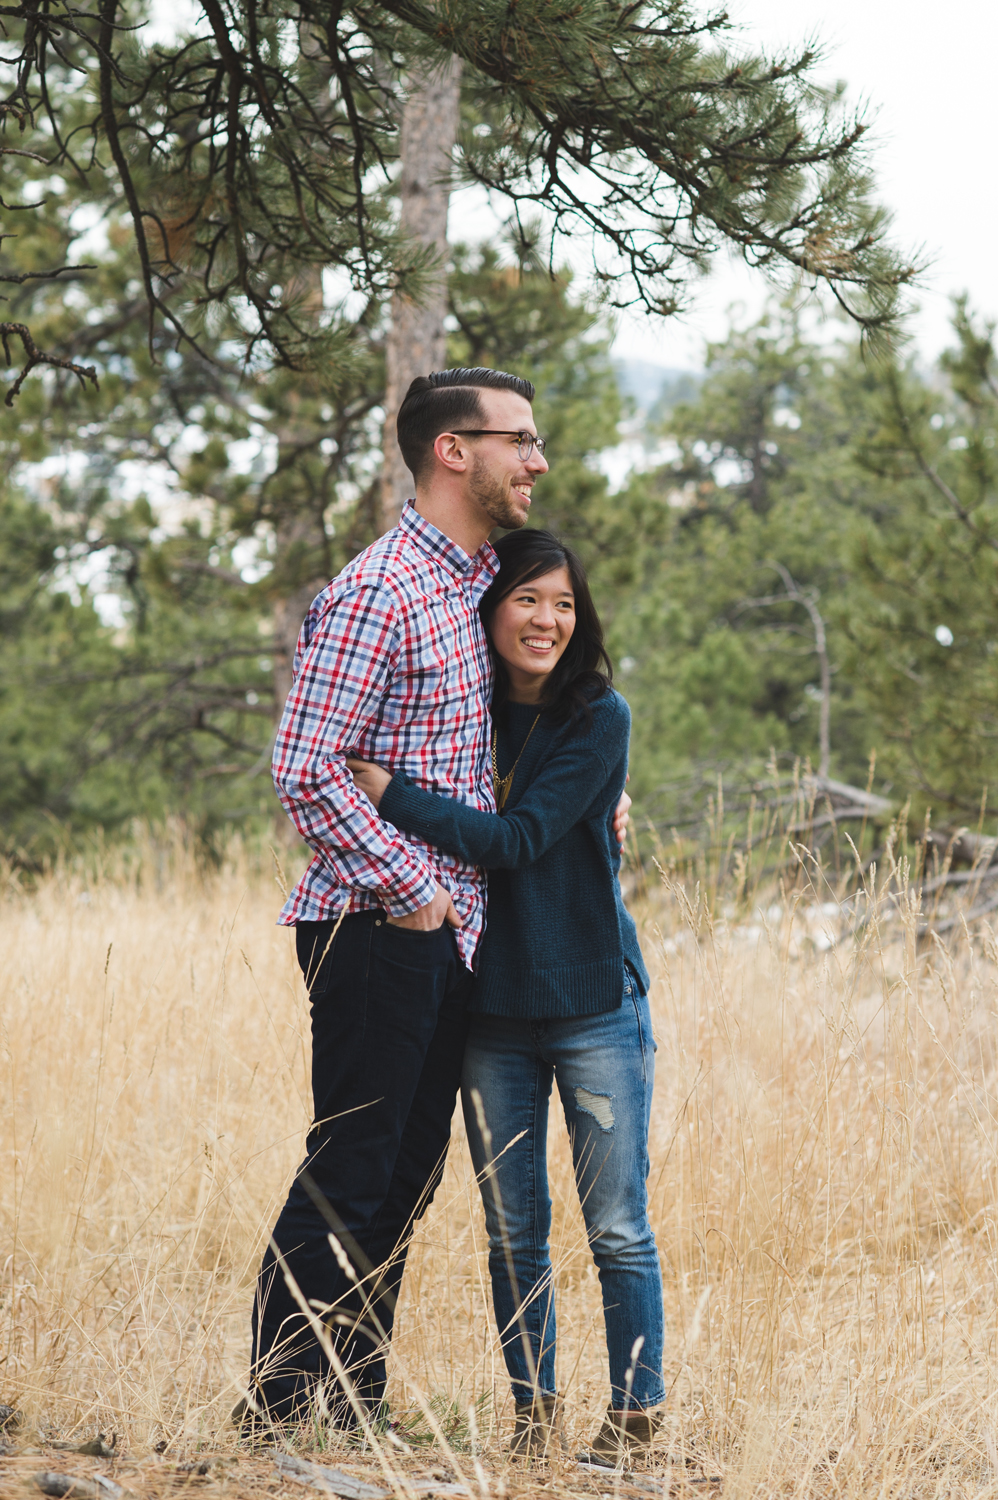 TiffanyandMark_Engaged_0035_squarespace.jpg